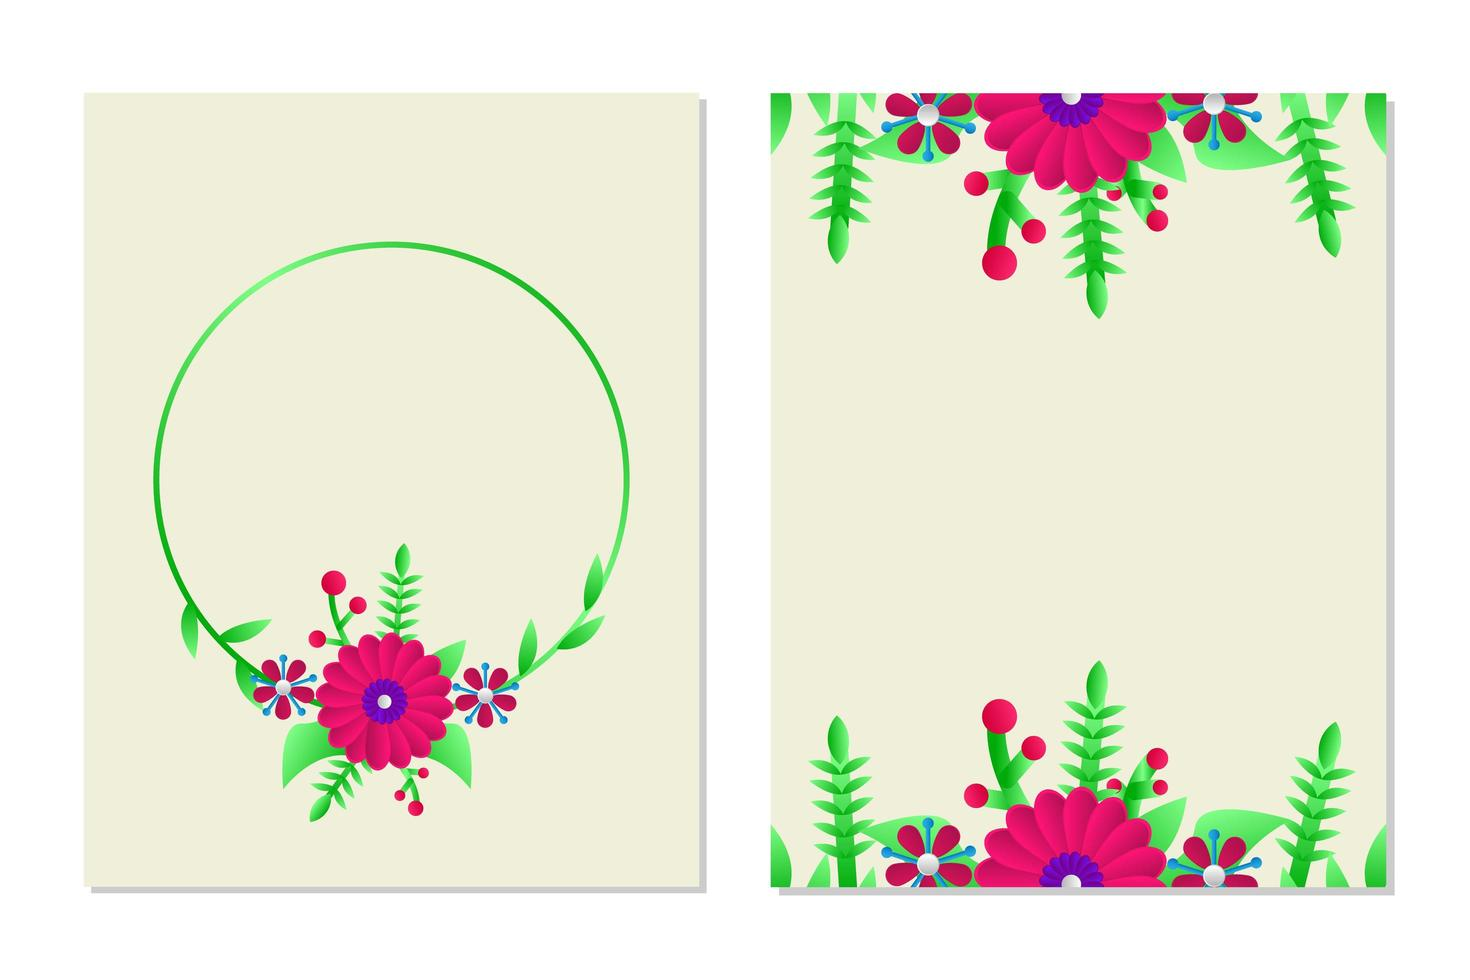 Floral Greeting Card Template Design For Layout And Cover Card Download Free Vectors Clipart Graphics Vector Art